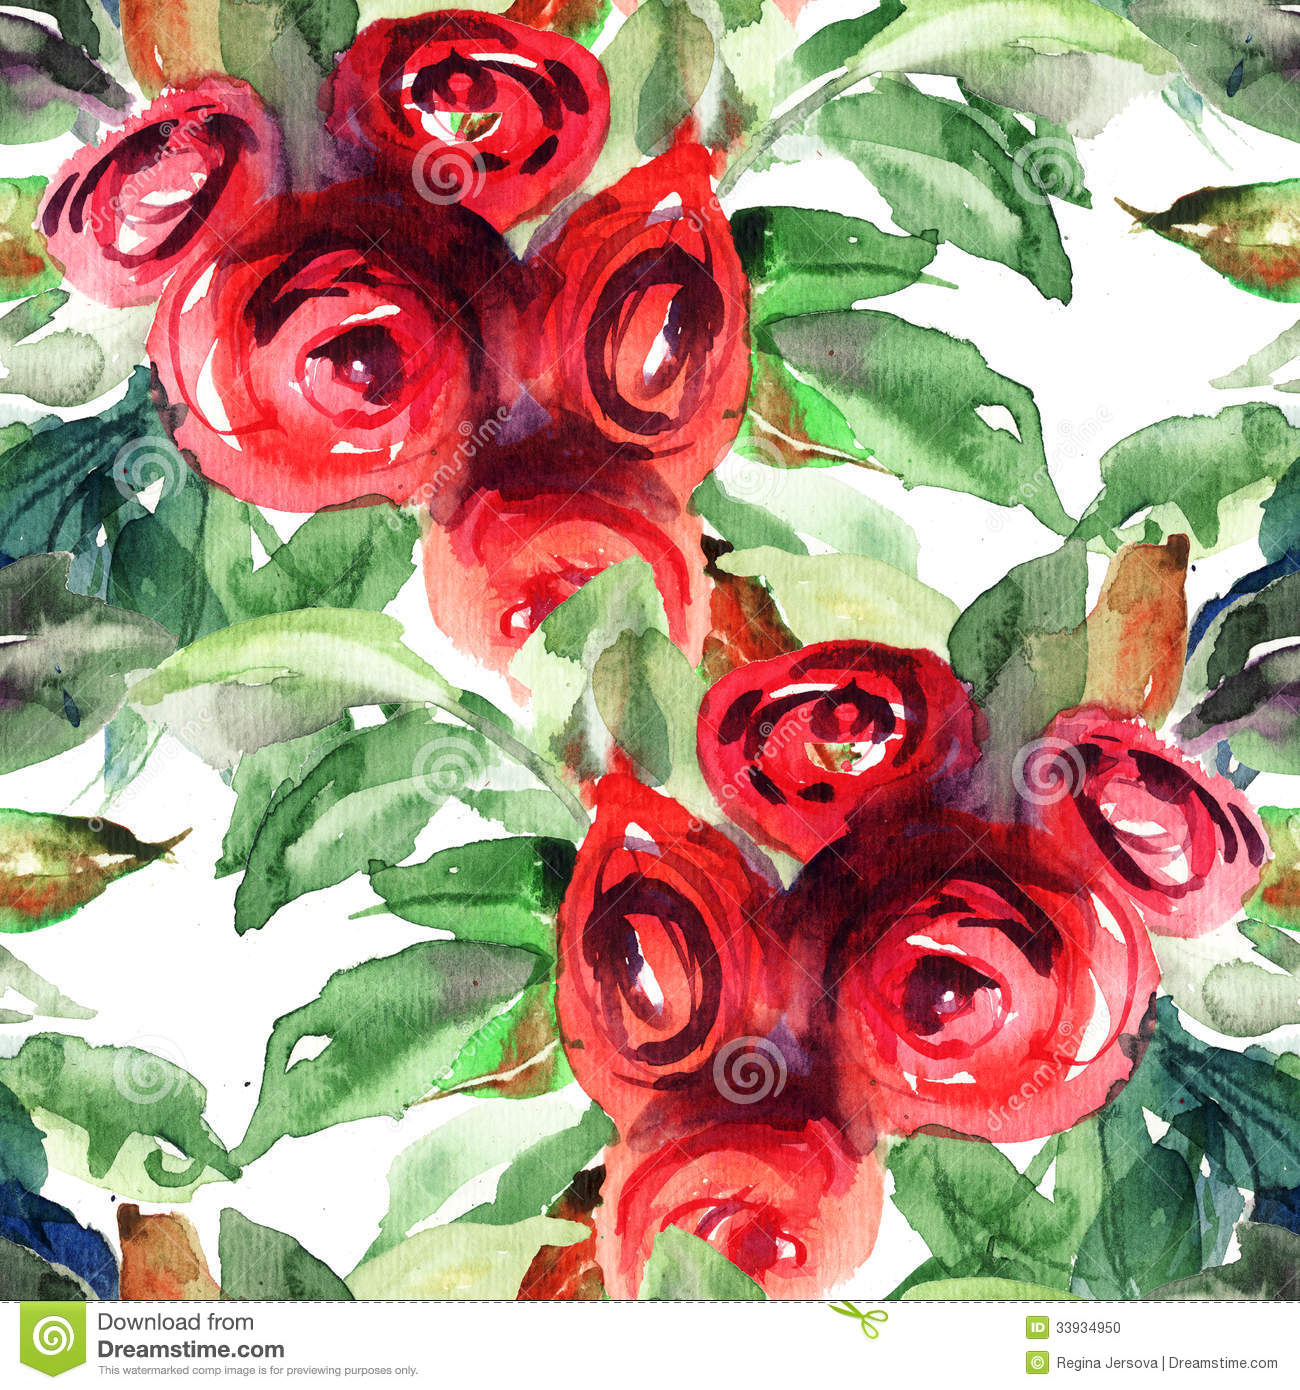 Beautiful roses flowers watercolor painting stock illustration beautiful roses flowers watercolor painting izmirmasajfo Image collections